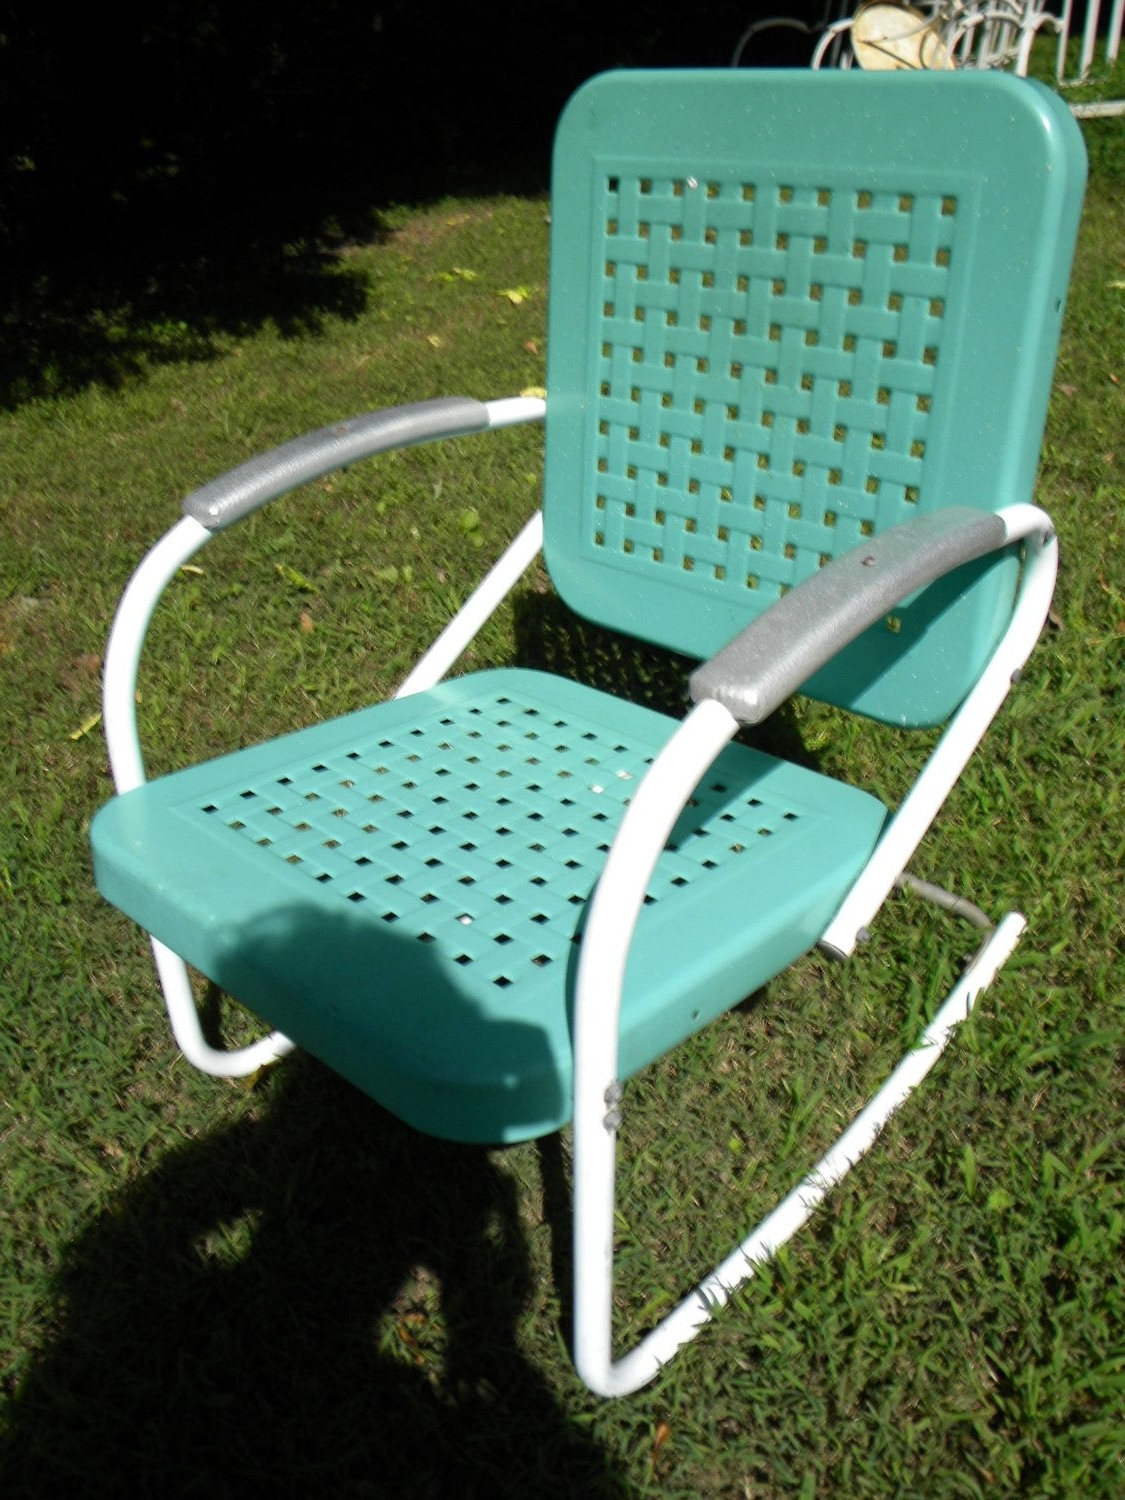 Widely Used Vtg 50S 60S Retro Outdoor Metal Lawn Patio Porch Rocking Chair Inside Vintage Outdoor Rocking Chairs (View 5 of 15)